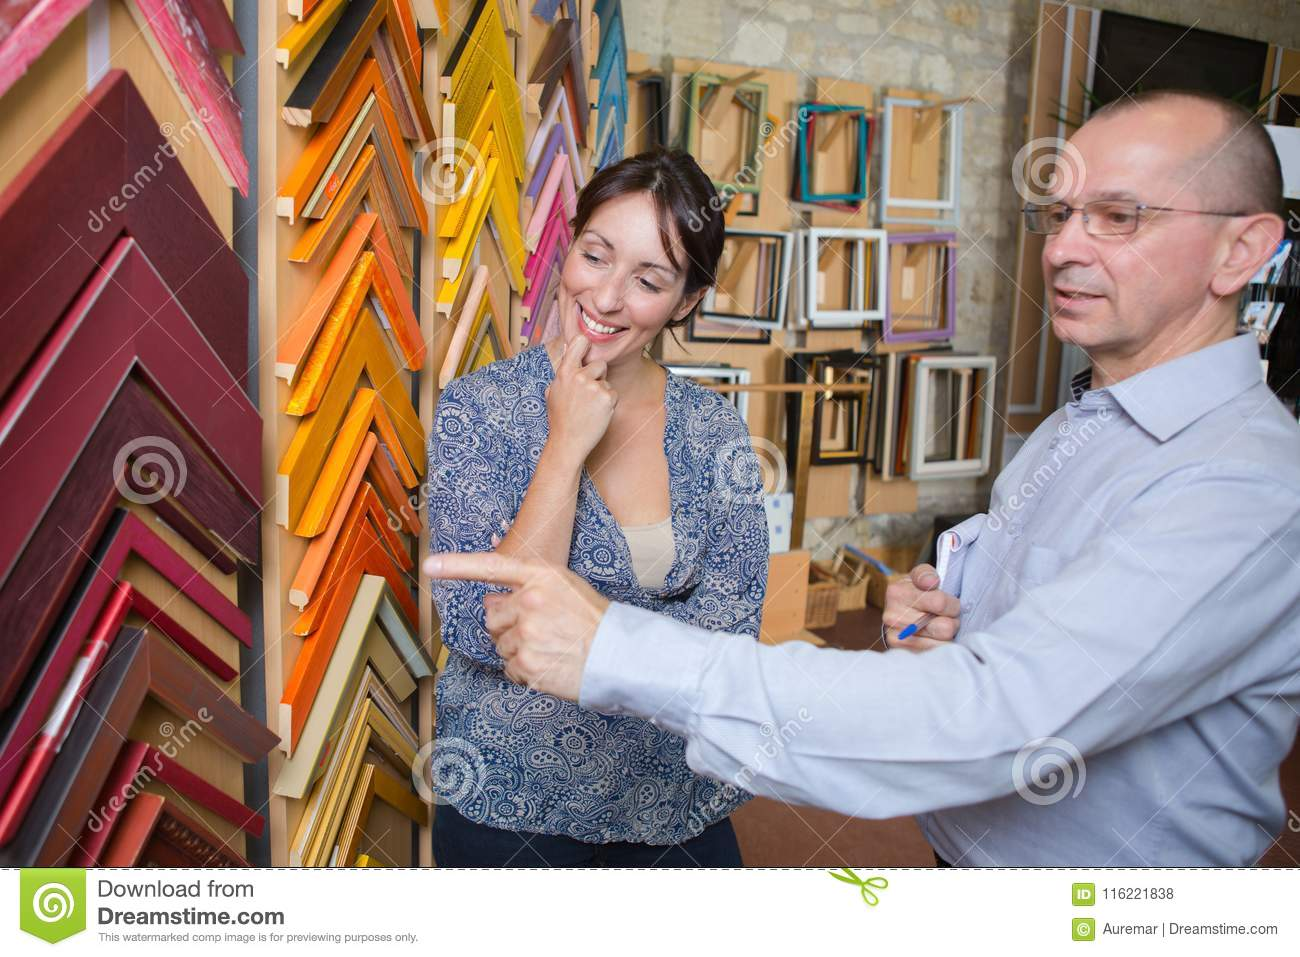 Couple looking at frames stock photo. Image of choosing - 116221838